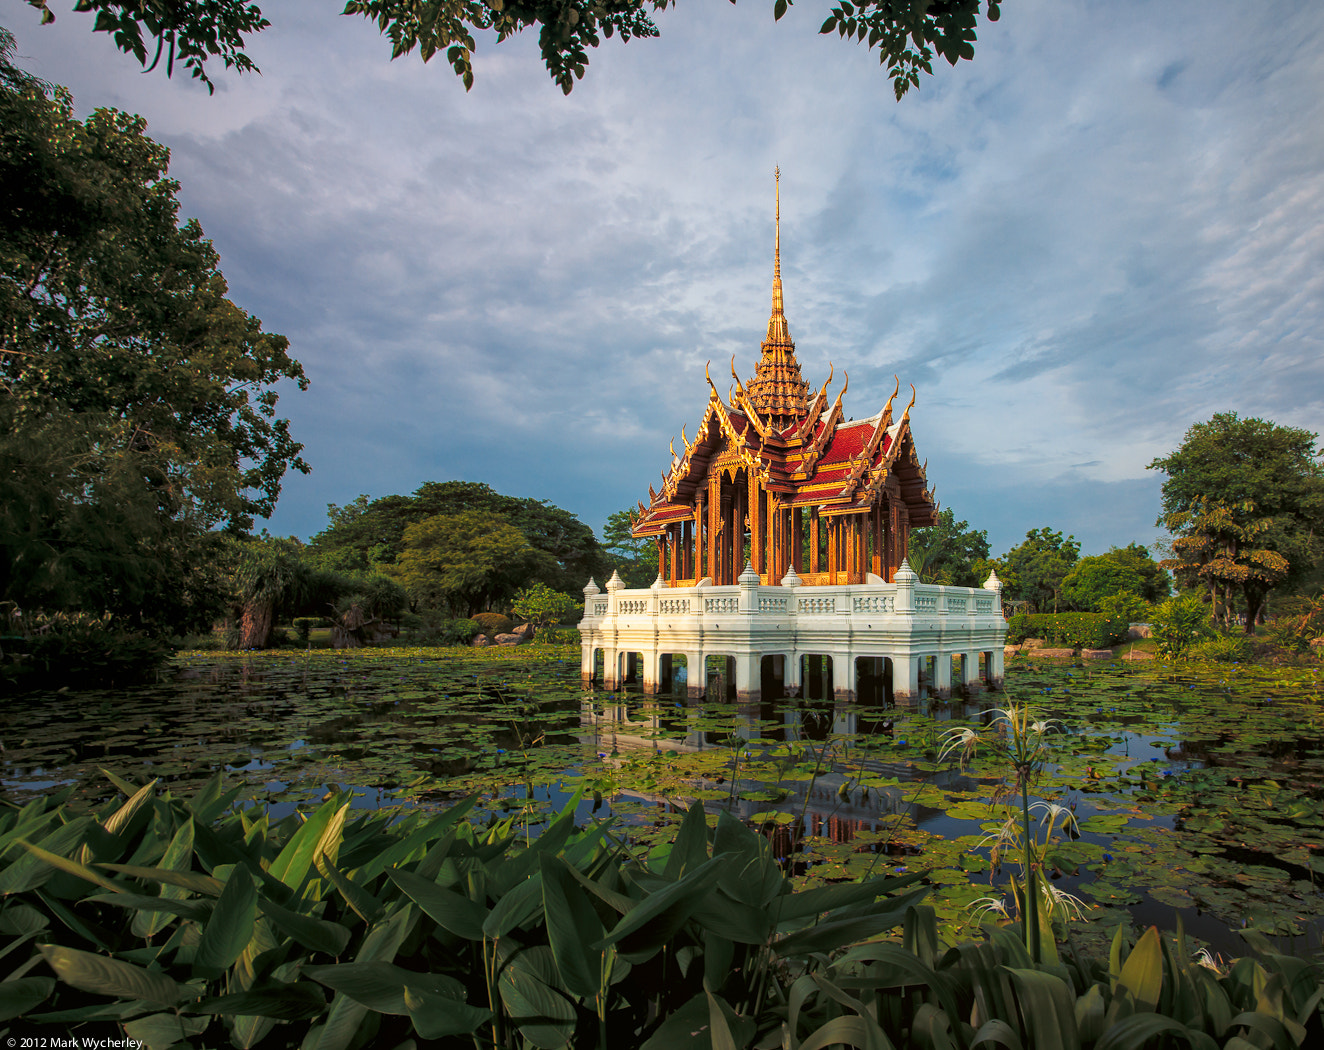 Photograph Royal pavillion by Mark Wycherley on 500px